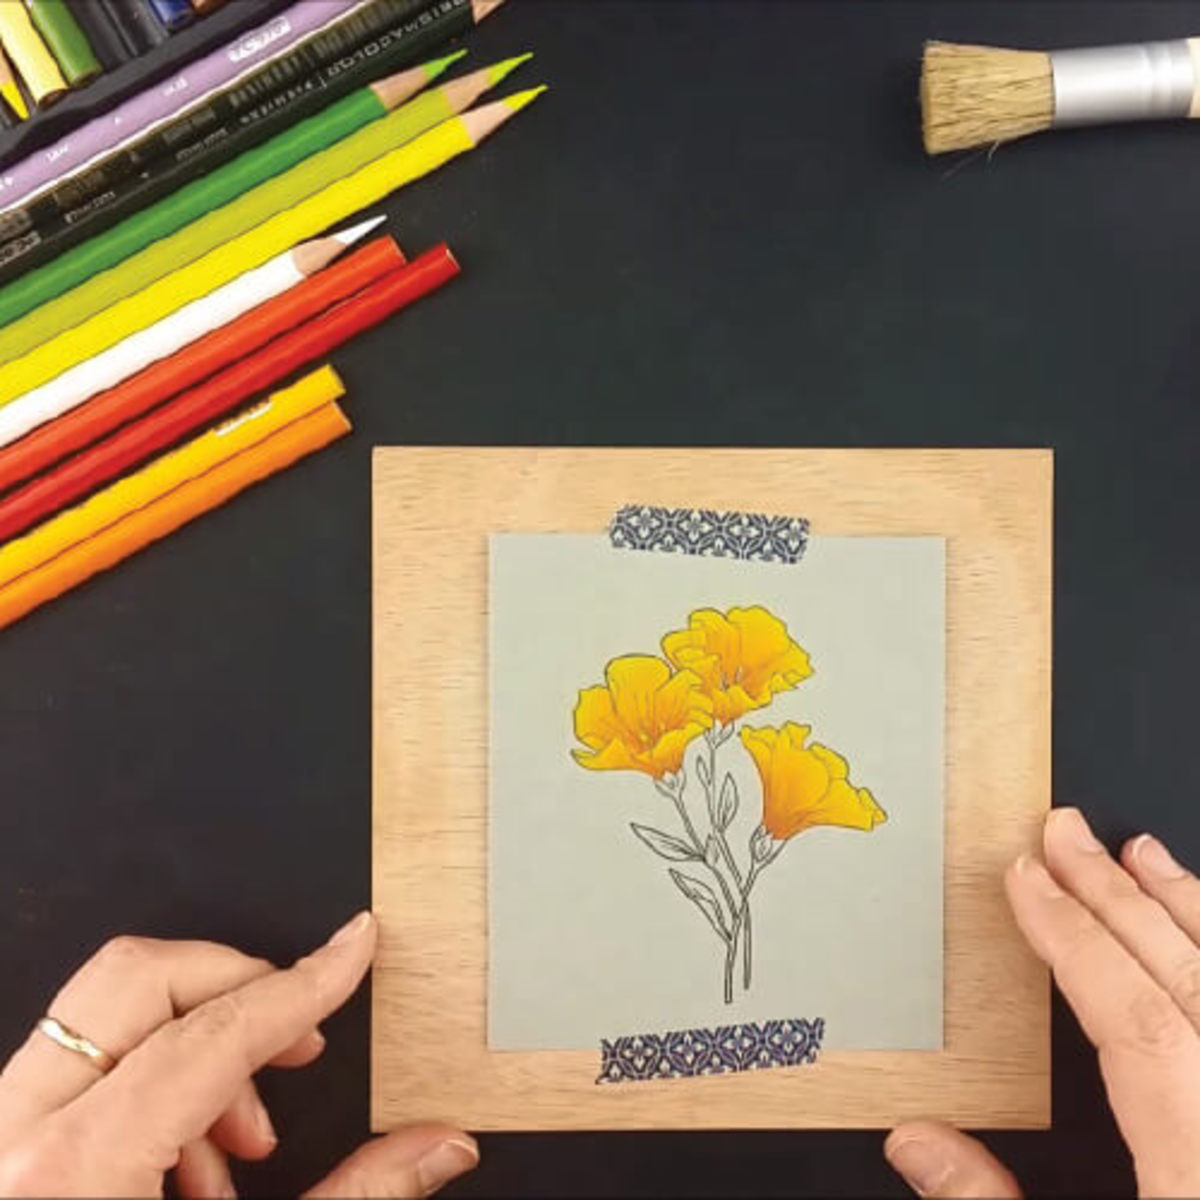 Colored pencils are far more forgiving than other mediums when coloring stamped images